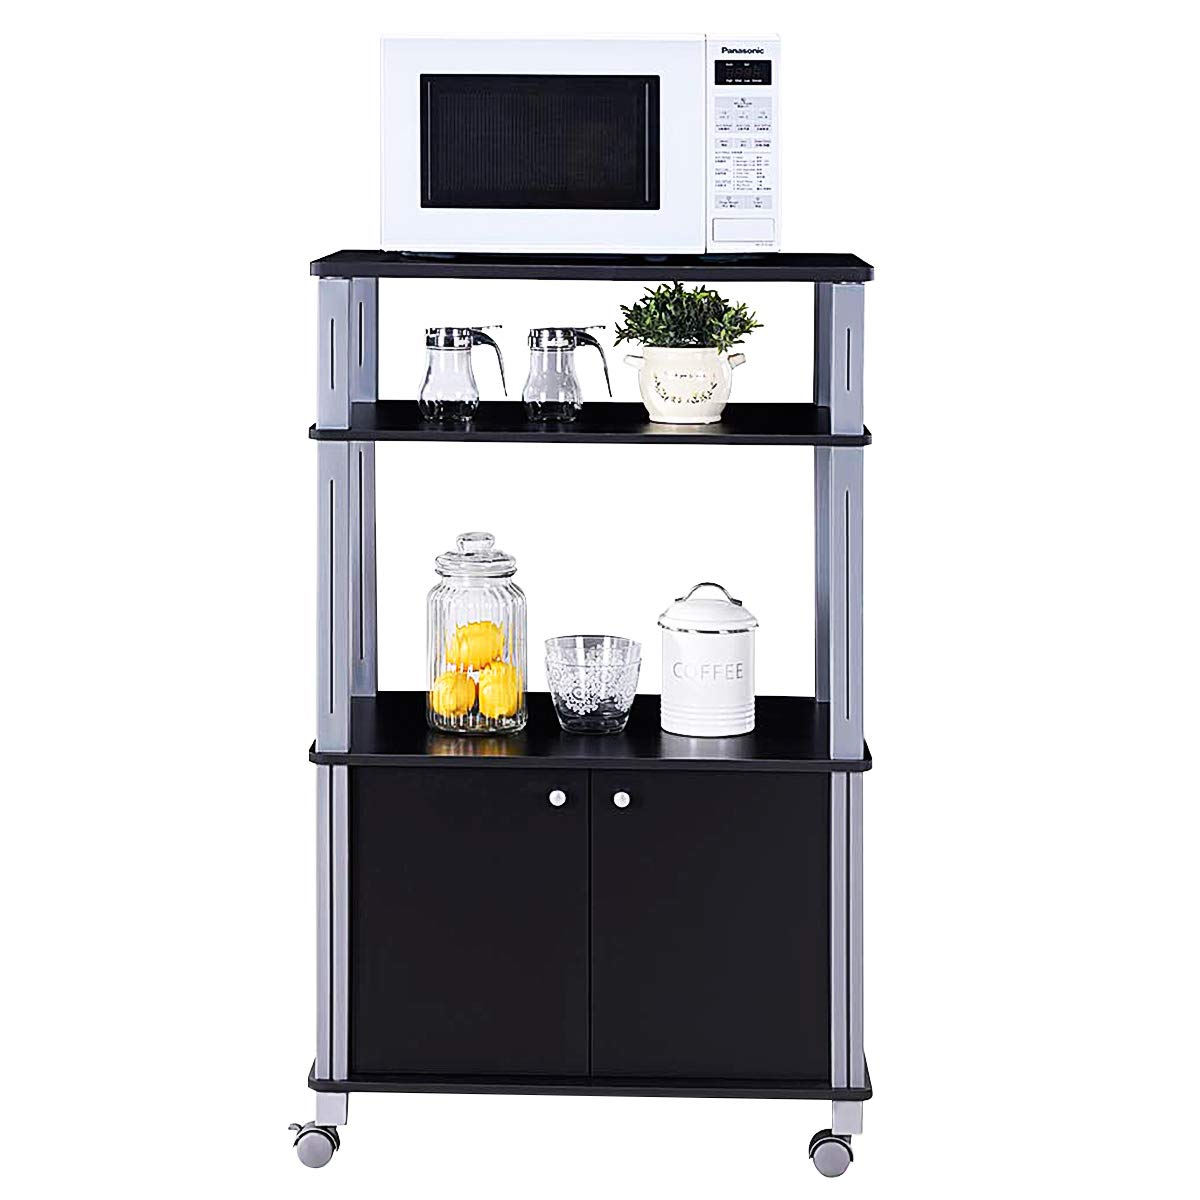 Giantex Rolling Kitchen Baker's Rack Microwave Oven Stand Utility Cart Multifunctional Display Shelf on Wheels with 2-Tier Shelf and Cabinet Spice Organizer for Kitchen Dining Room Furniture (Black) by Giantex (Image #9)